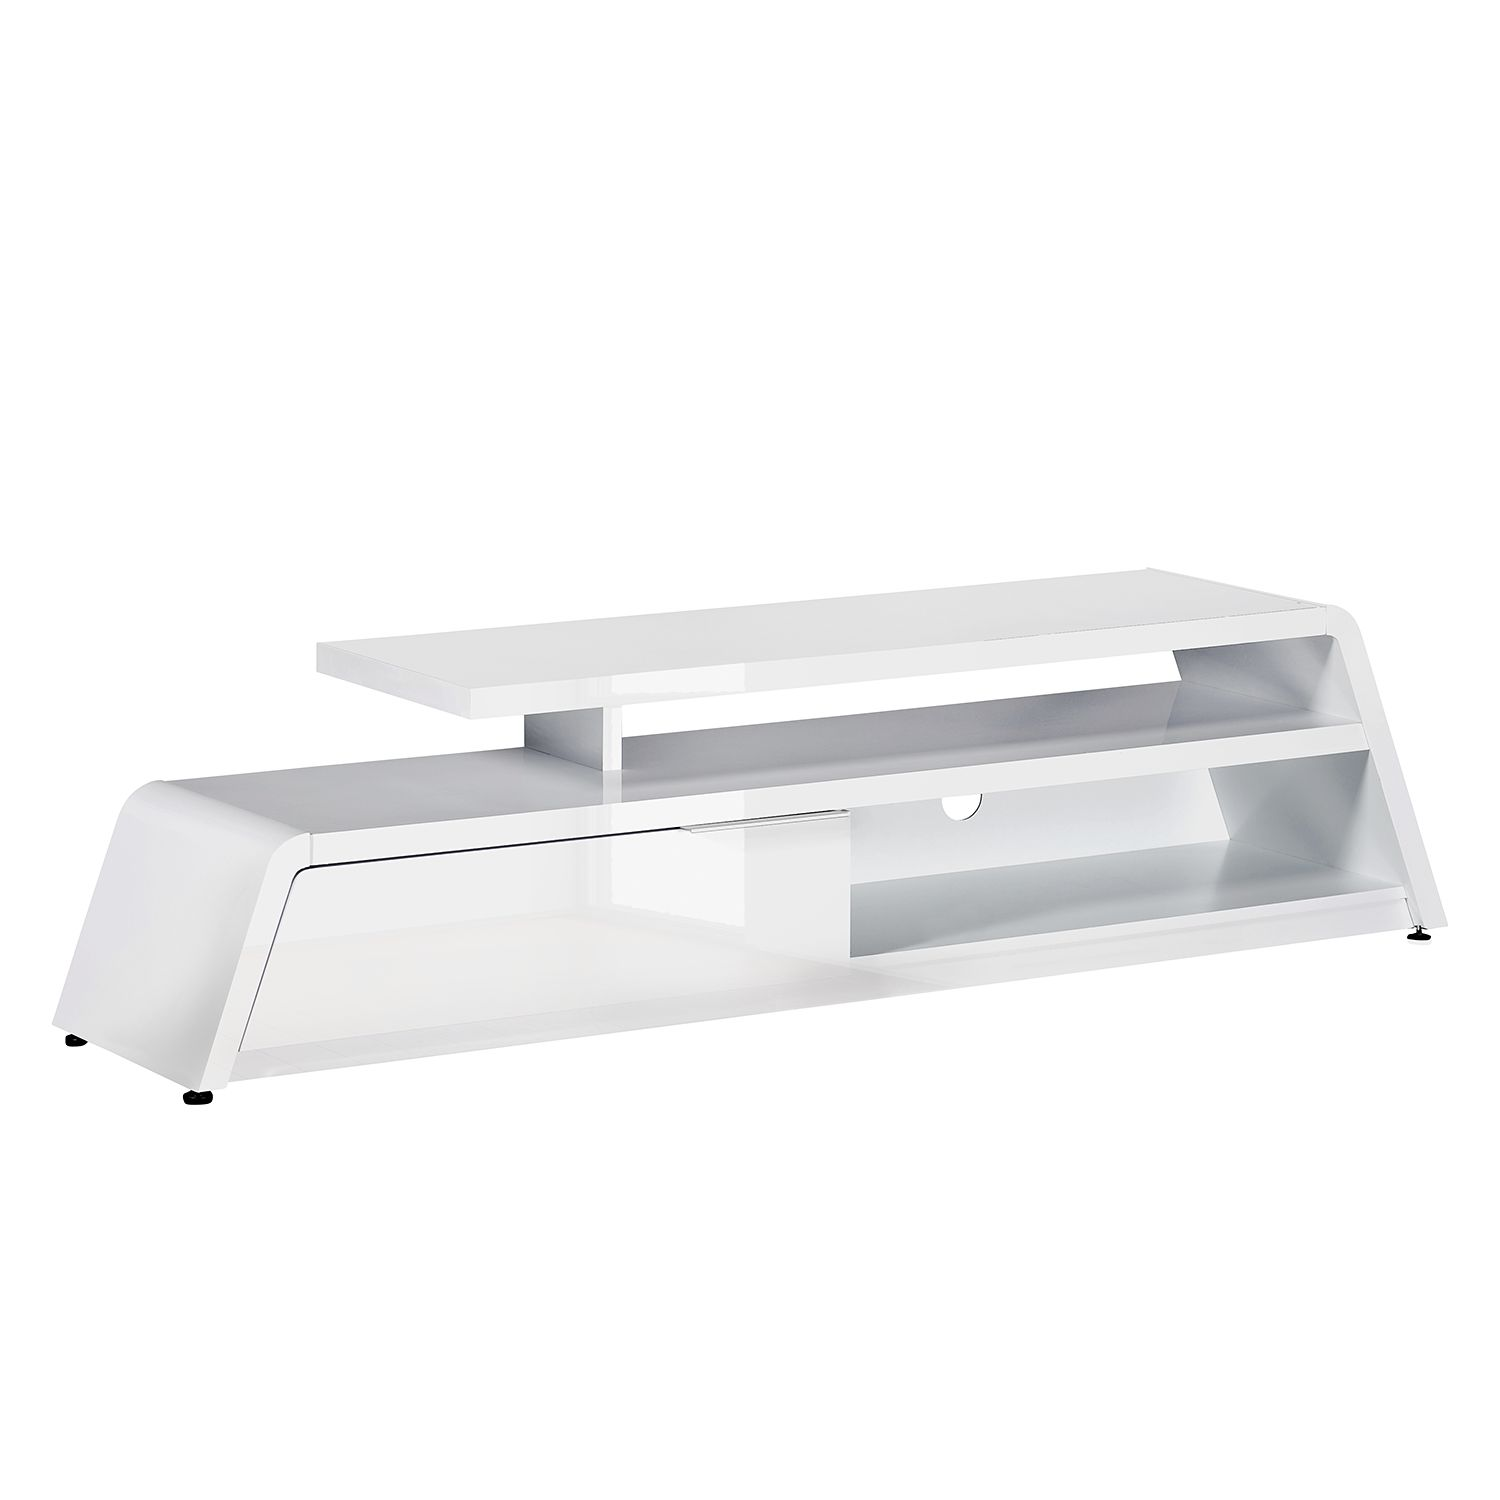 Meuble TV CU-Culture M 180 - Blanc brillant, Jahnke